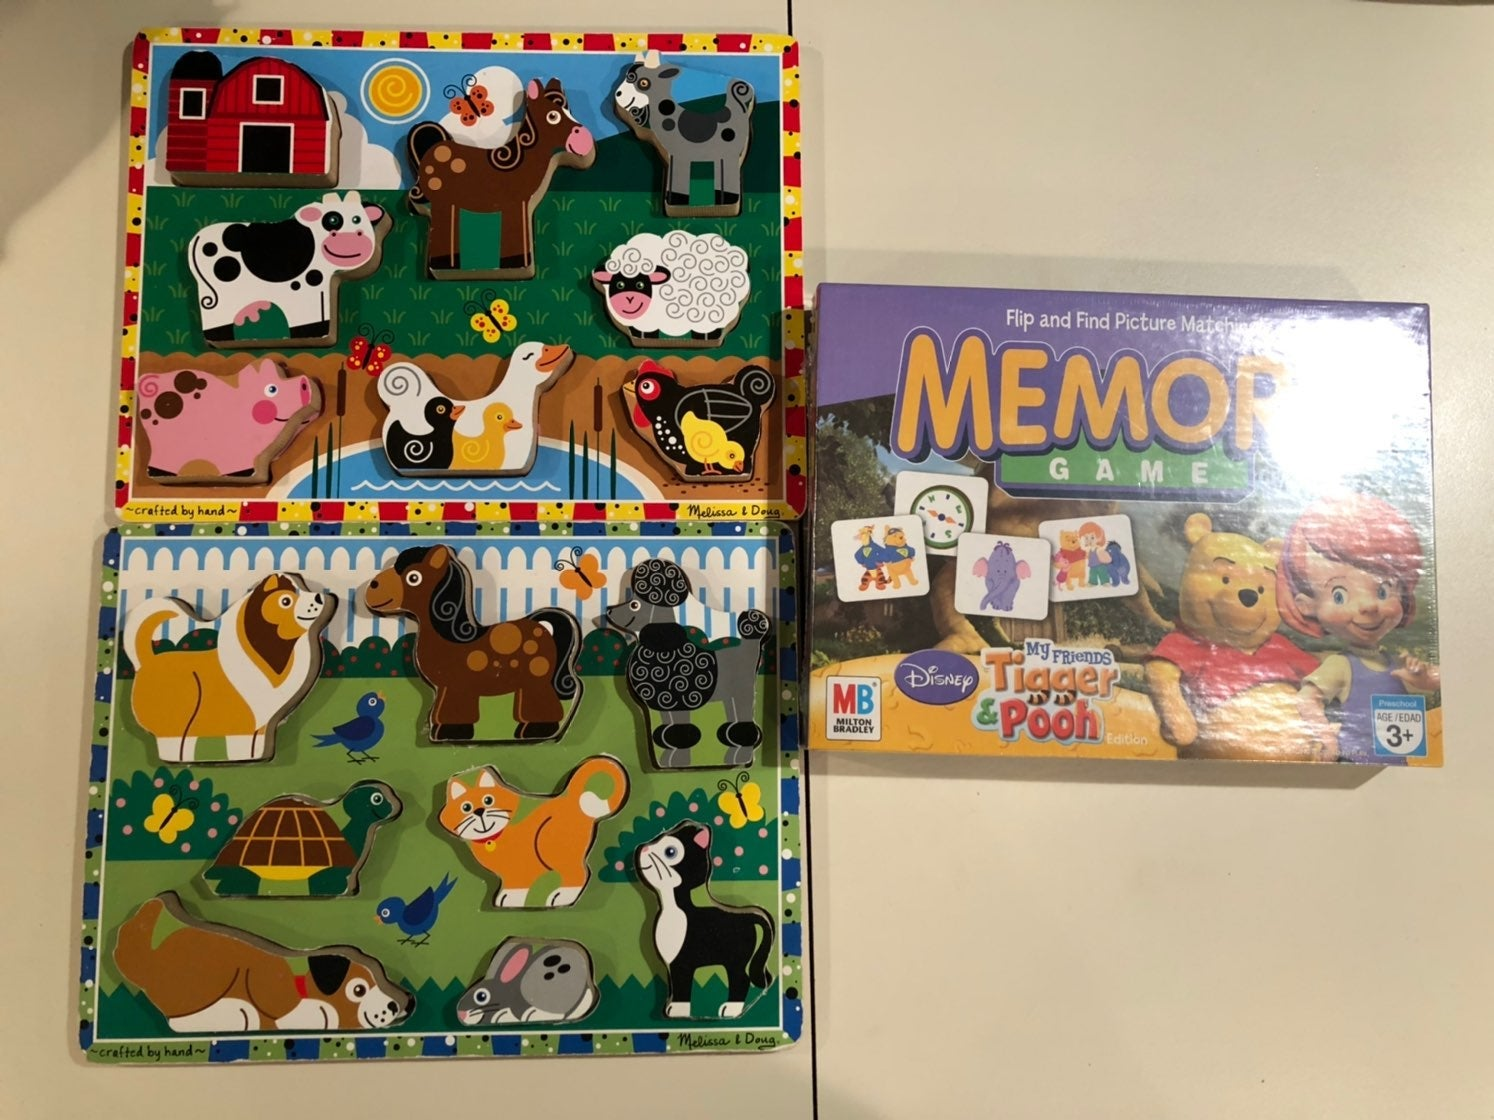 melissa and doug wooden puzzles + memory